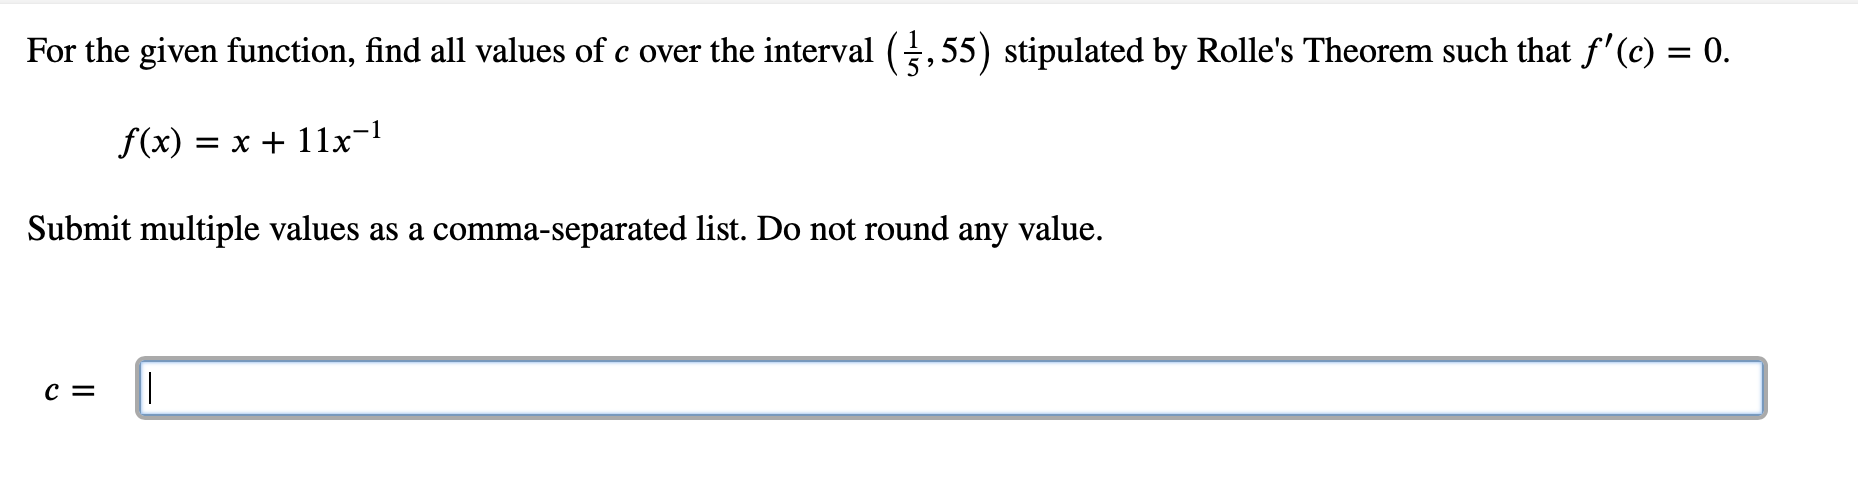 For the given function, find all values of c over the interval (,55) stipulated by Rolle's Theorem such that f'(c) = 0. f(x) = x + 11x=l Submit multiple values as a comma-separated list. Do not round any value. c =